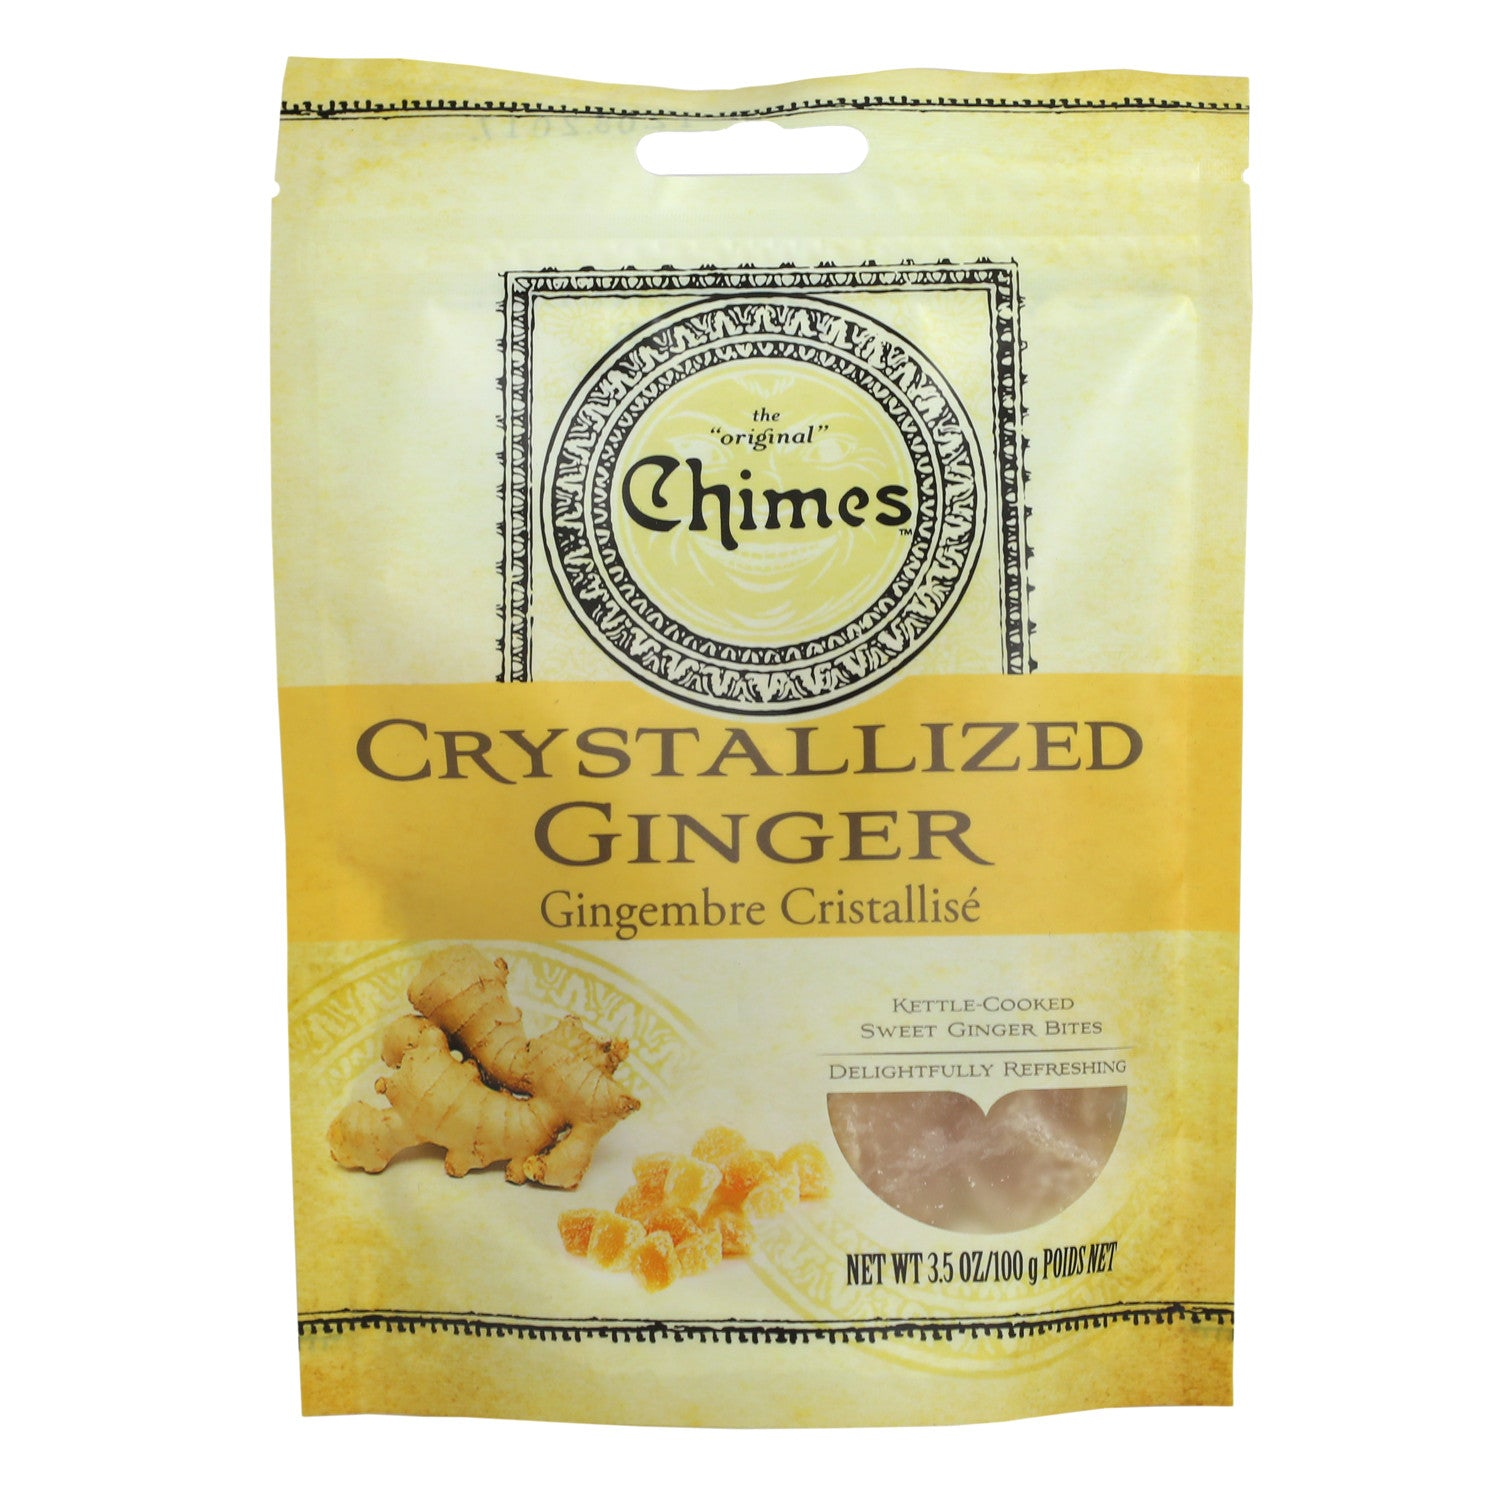 Chimes Crystallized Ginger 3 5 Oz Or 16 Oz